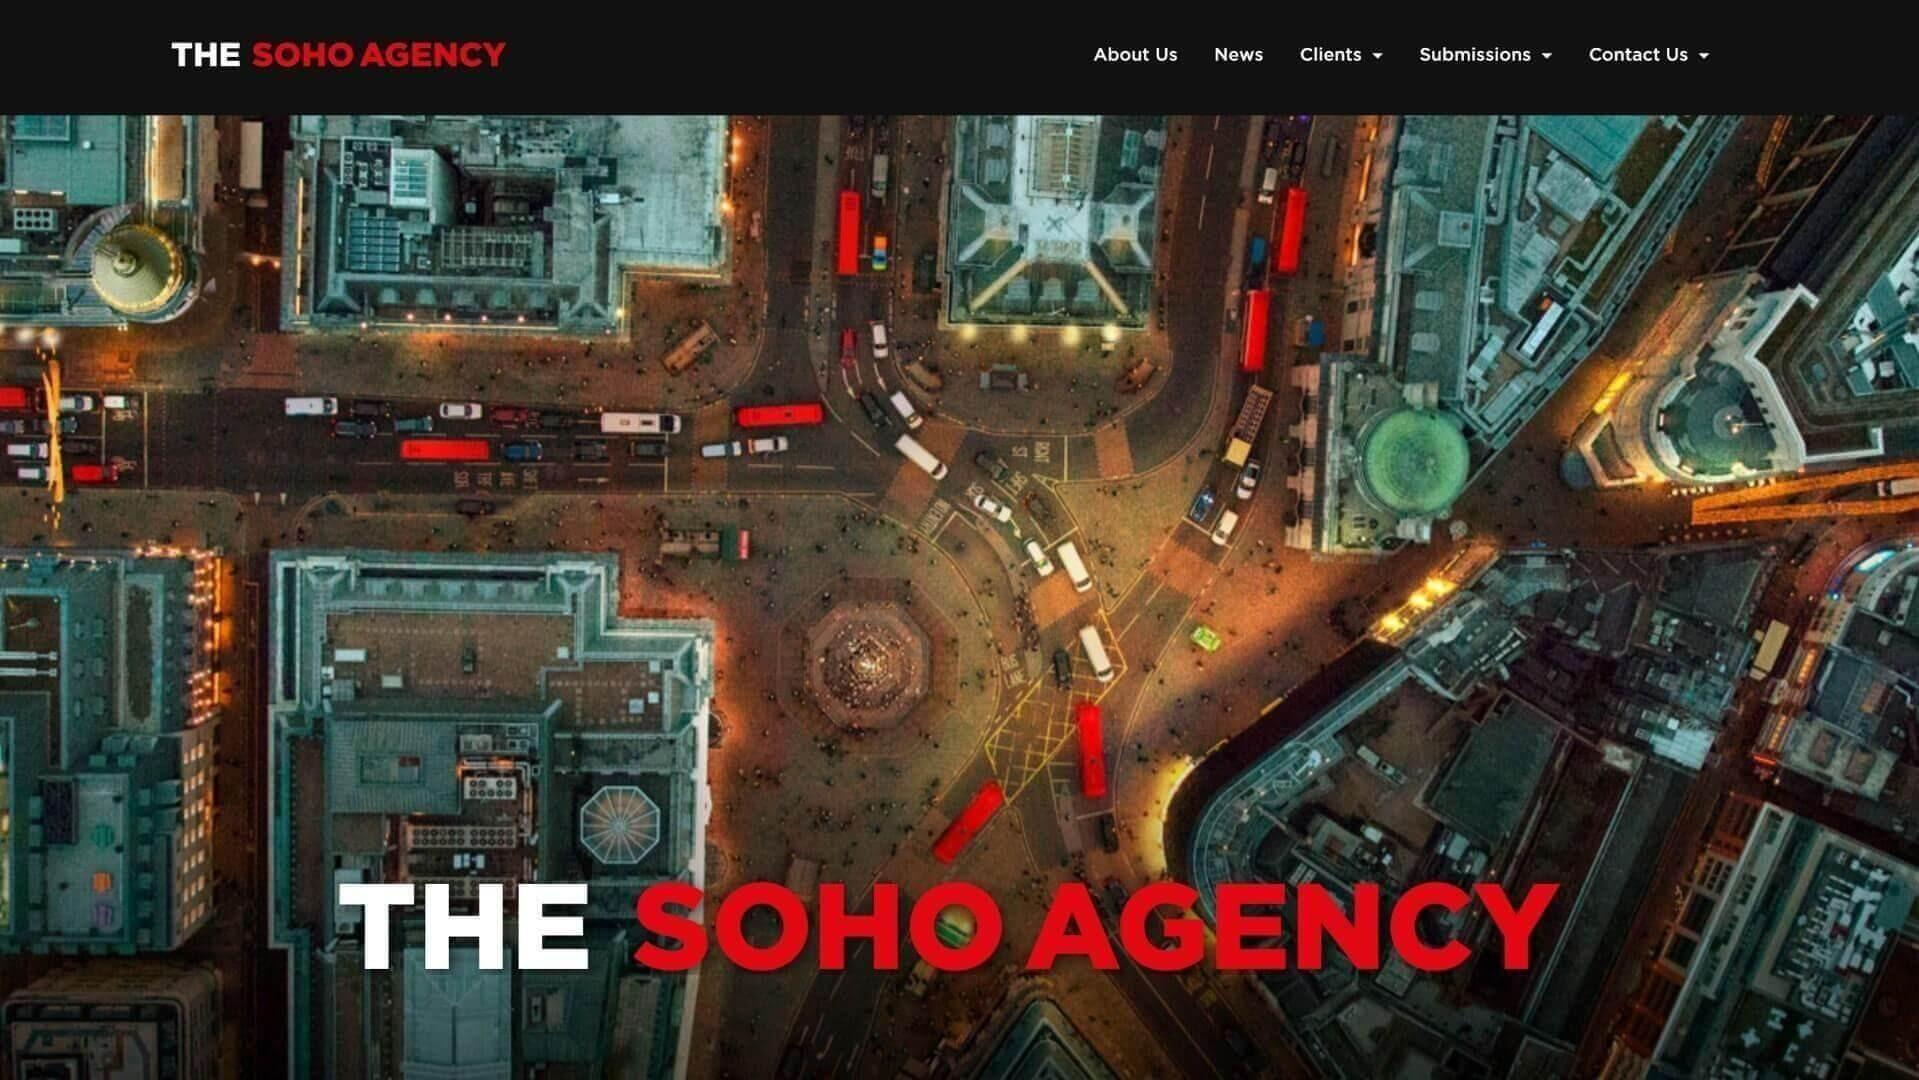 The Soho Agency